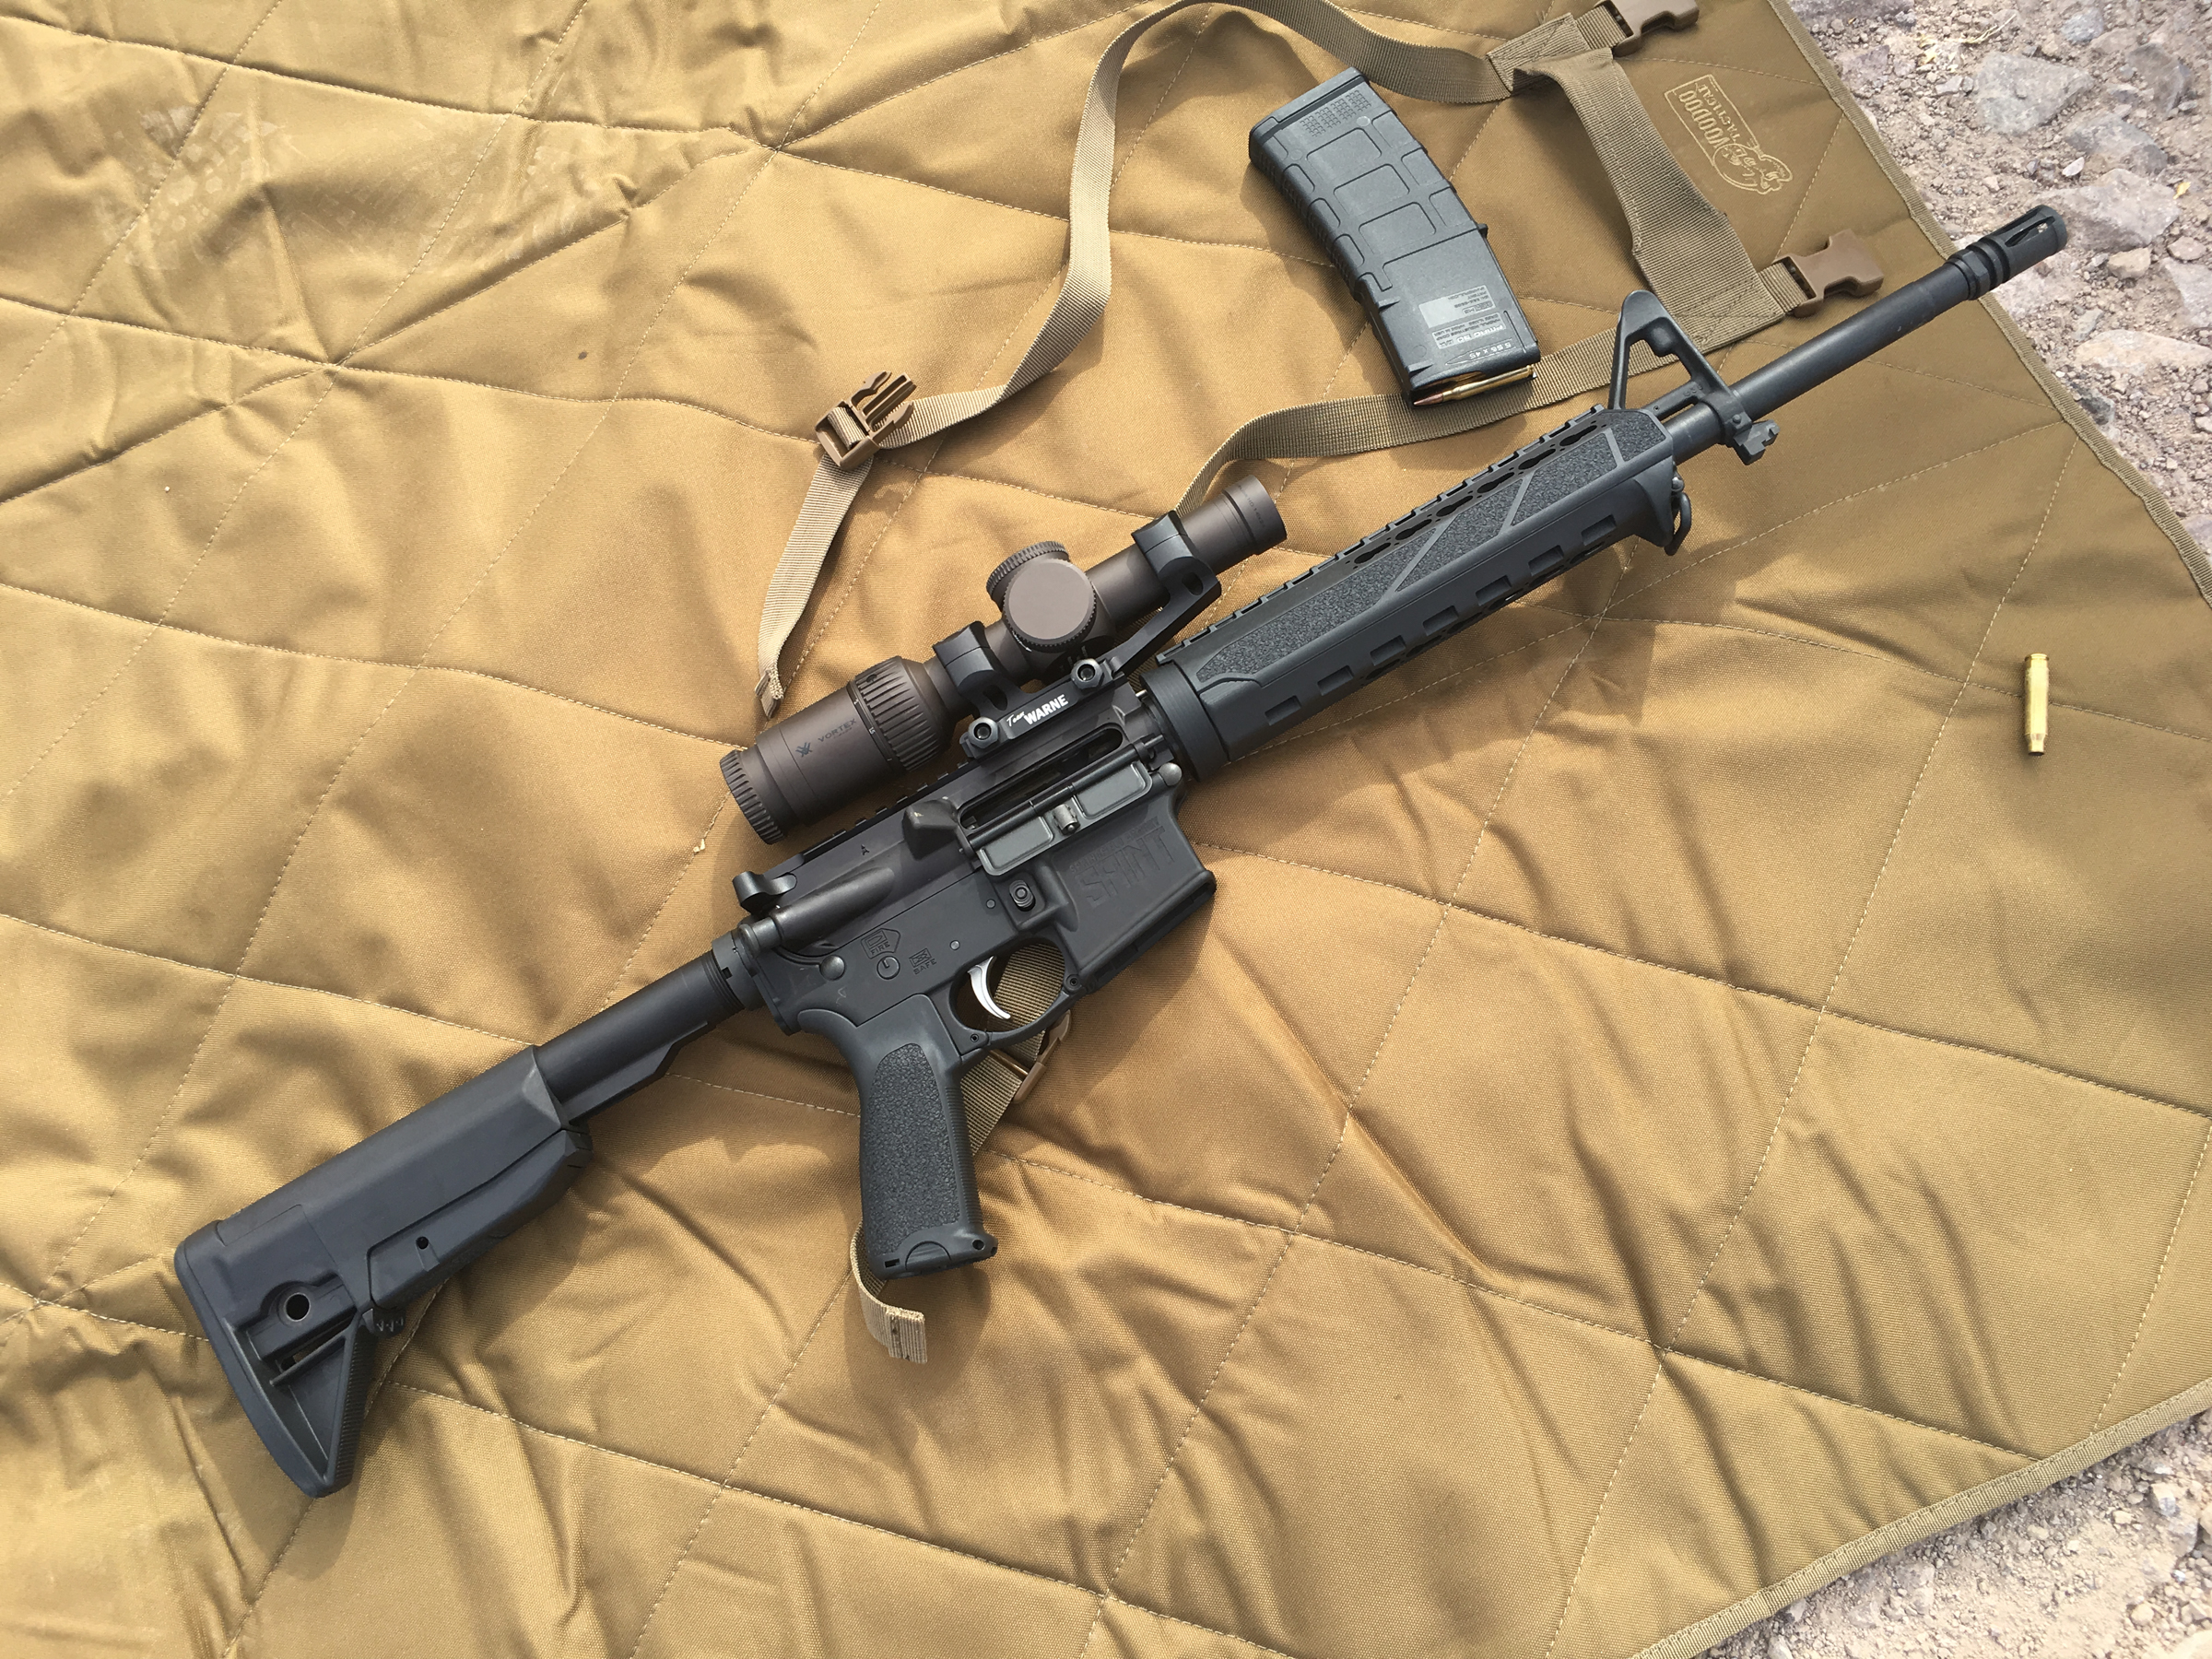 The new Springfield Armory SAINT AR-15, shown here with a Bushnell Elite SMRS scope.